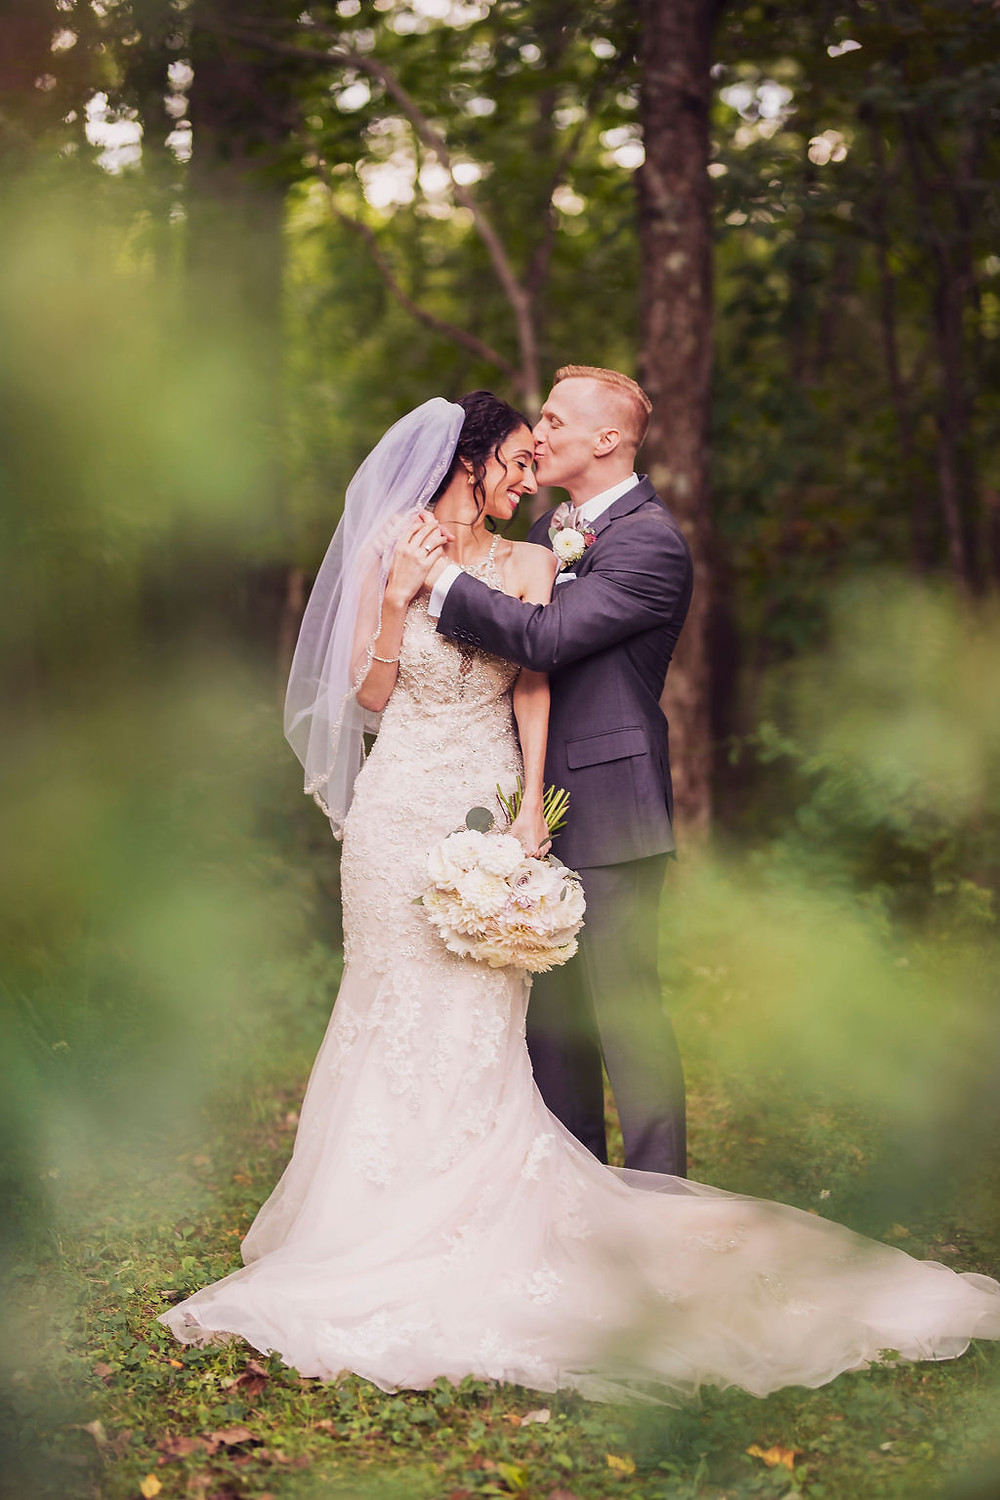 Romantic Intimate Wedding at Chatfiled Hollow Inn